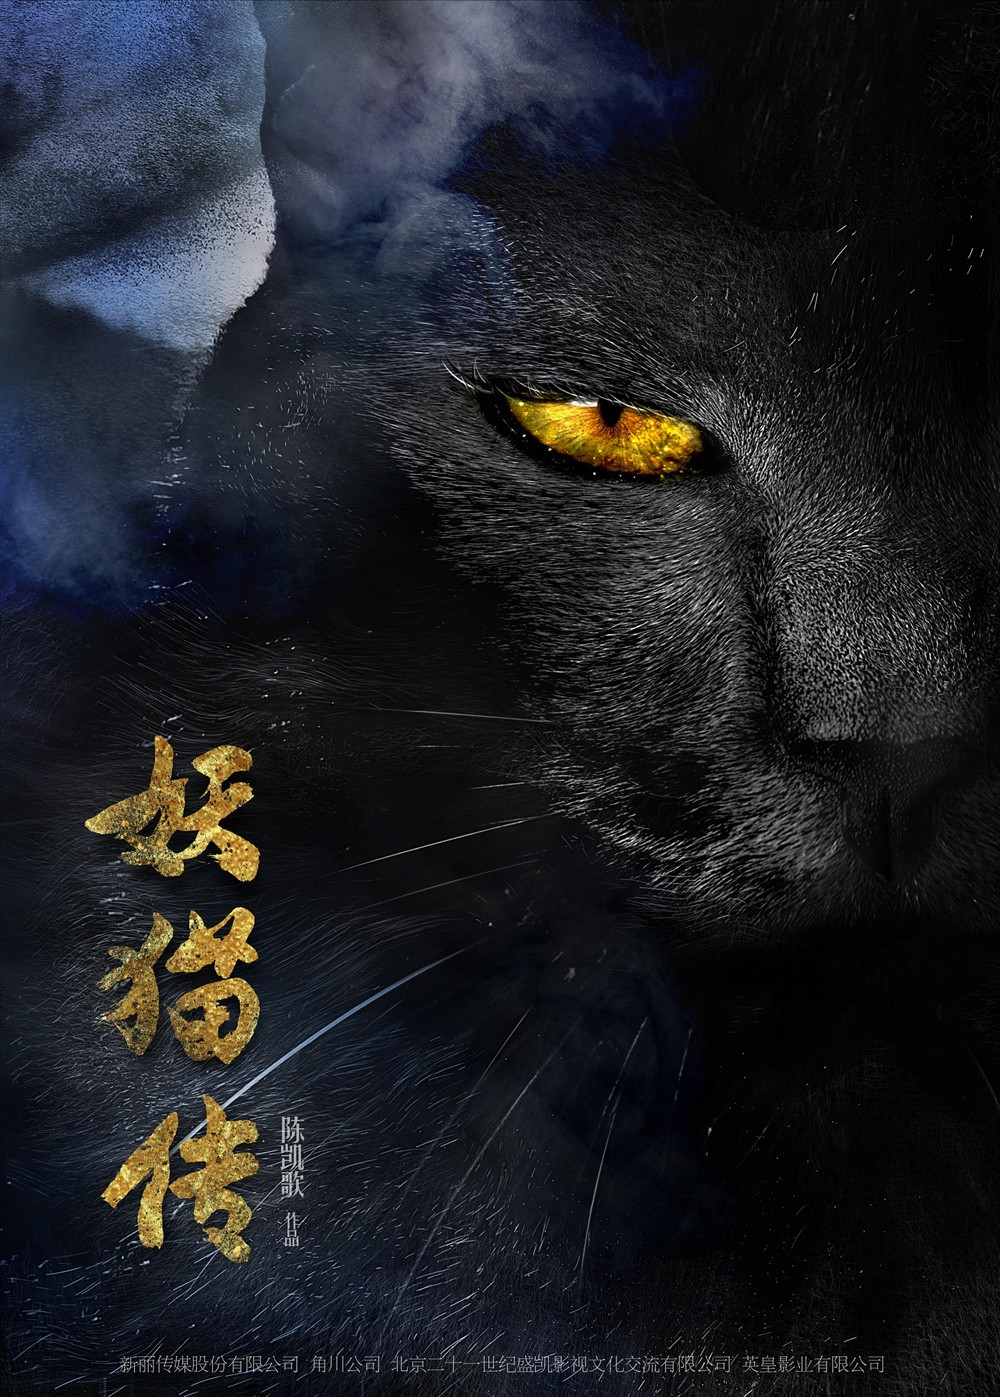 legend of the demon cat movie poster